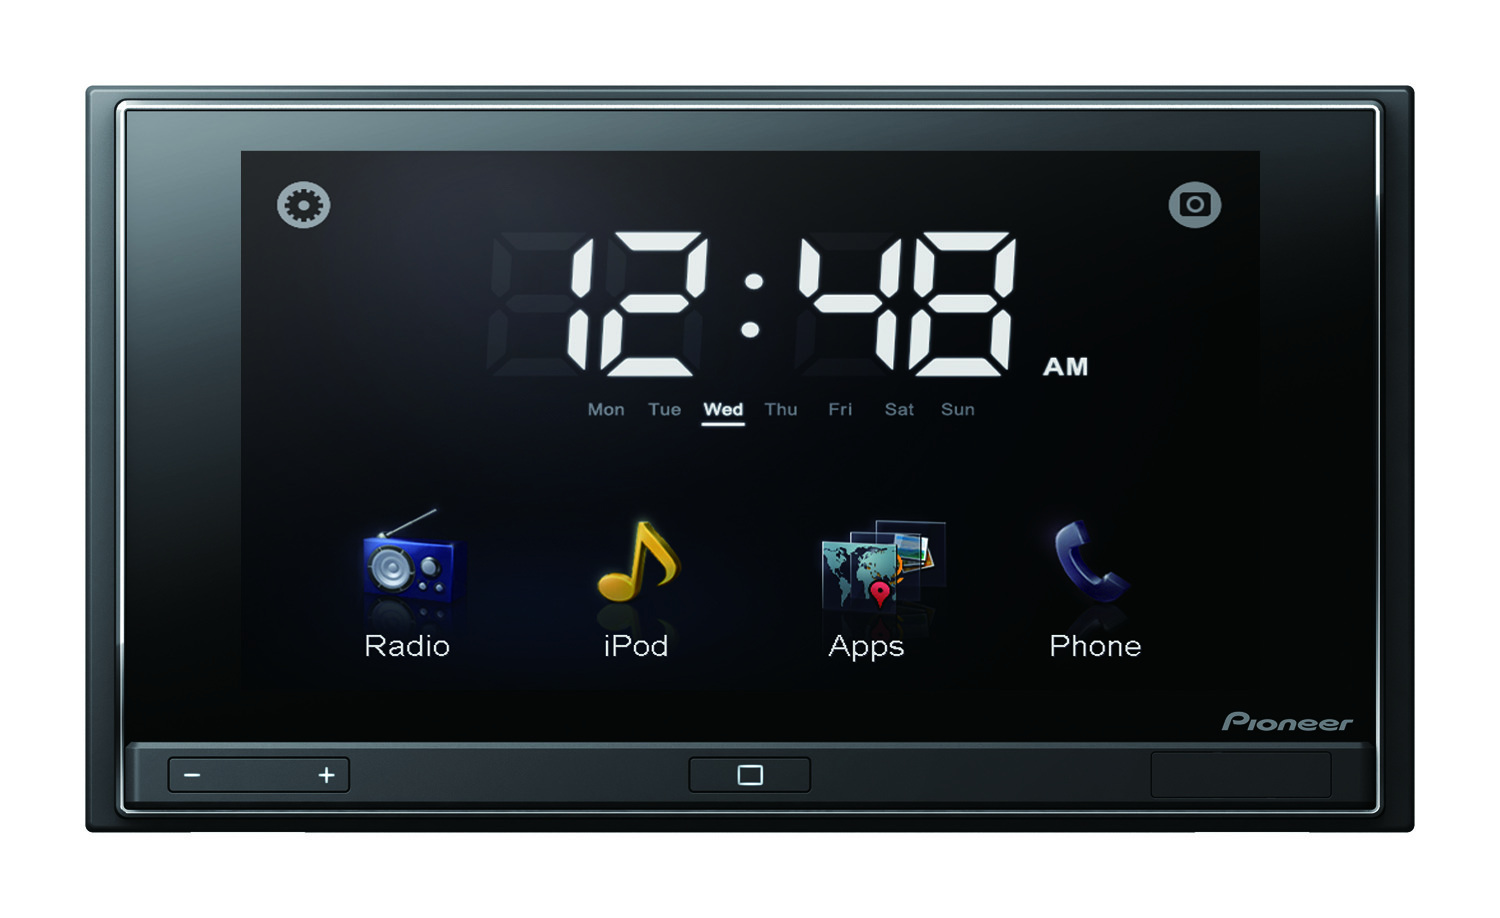 Pioneer's AppRadio integrates tightly with the user's connected smartphone and its apps.